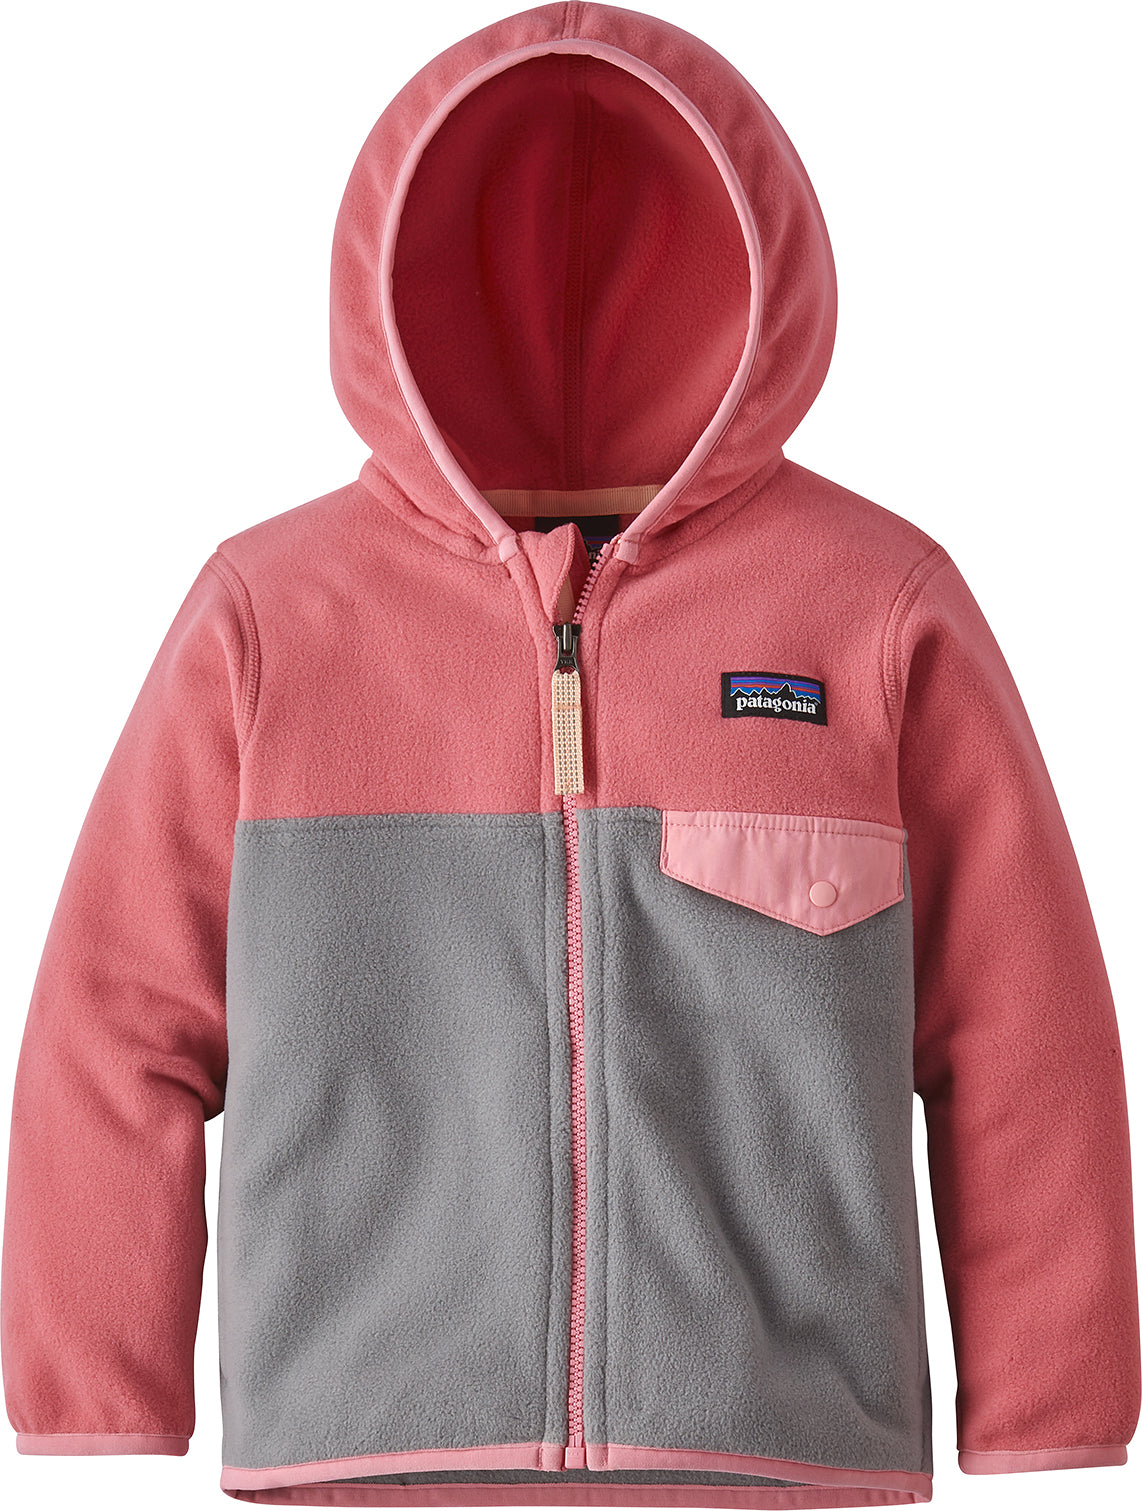 0fa33bd33 ... Micro D Snap-T Jacket - Baby's Feather Grey - Sticker Pink ...